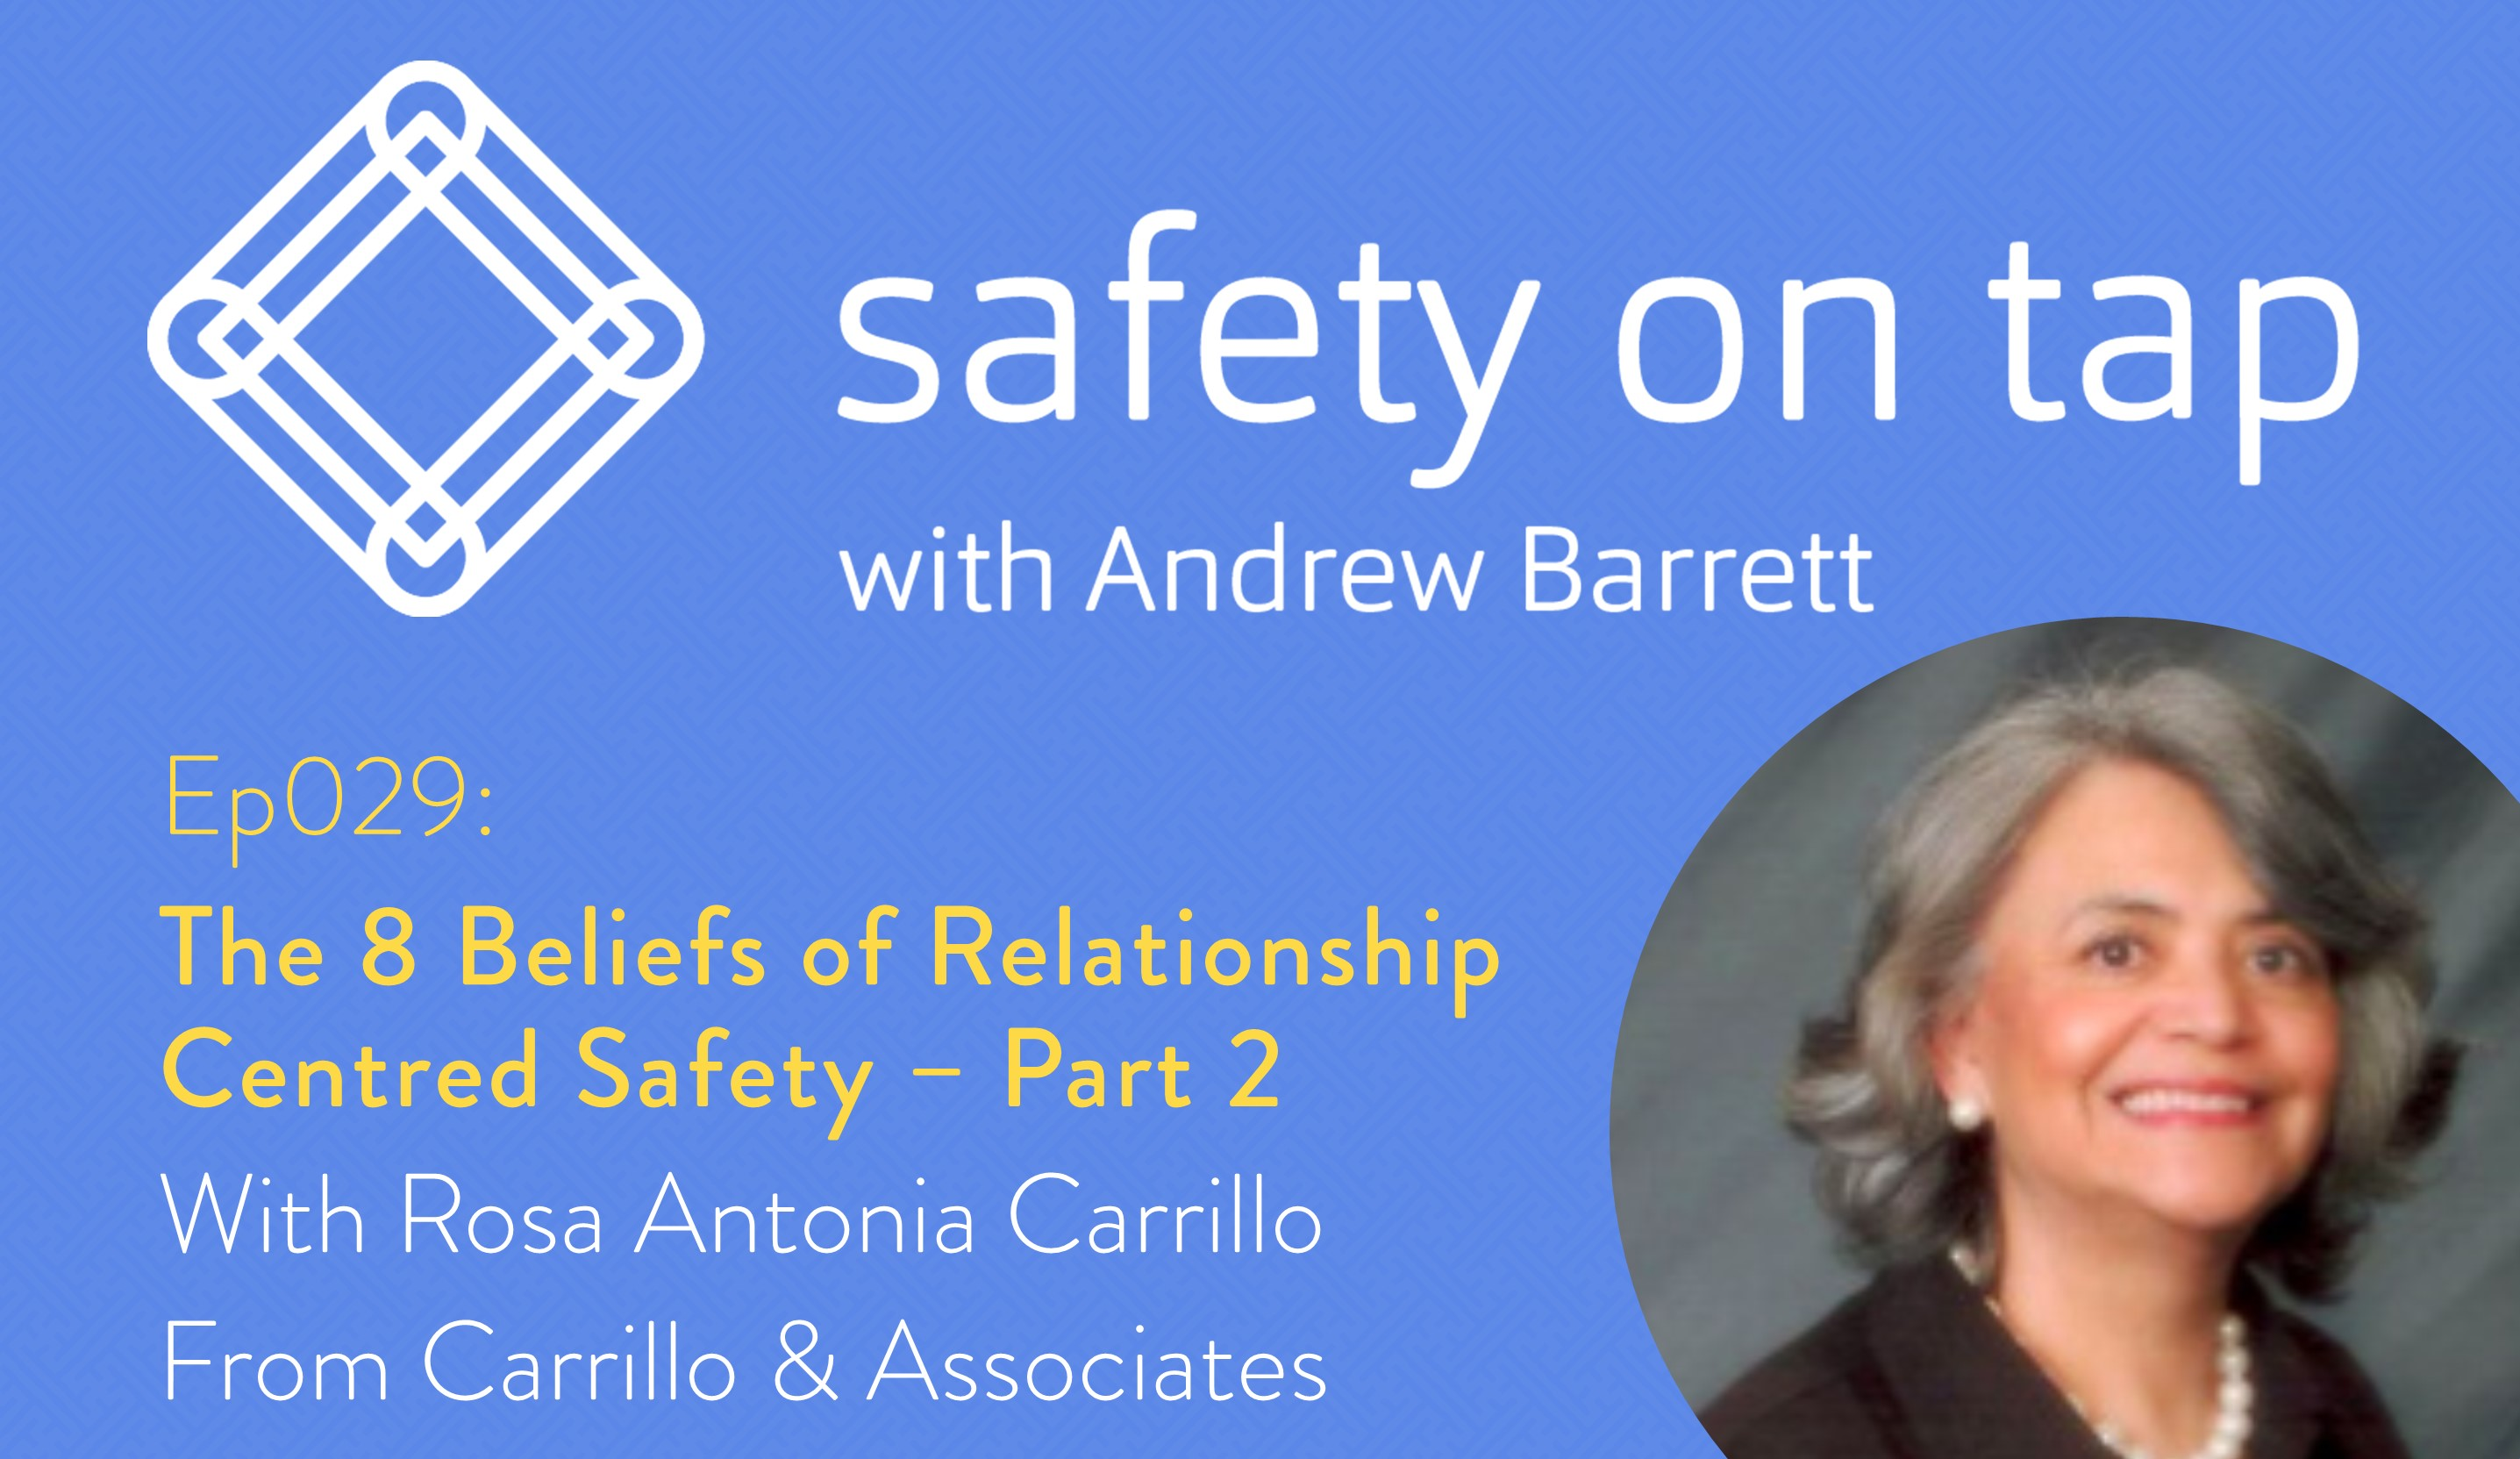 Ep29: The 8 Beliefs of Relationship Centered Safety Part 2, with Rosa Antonia Carrillo